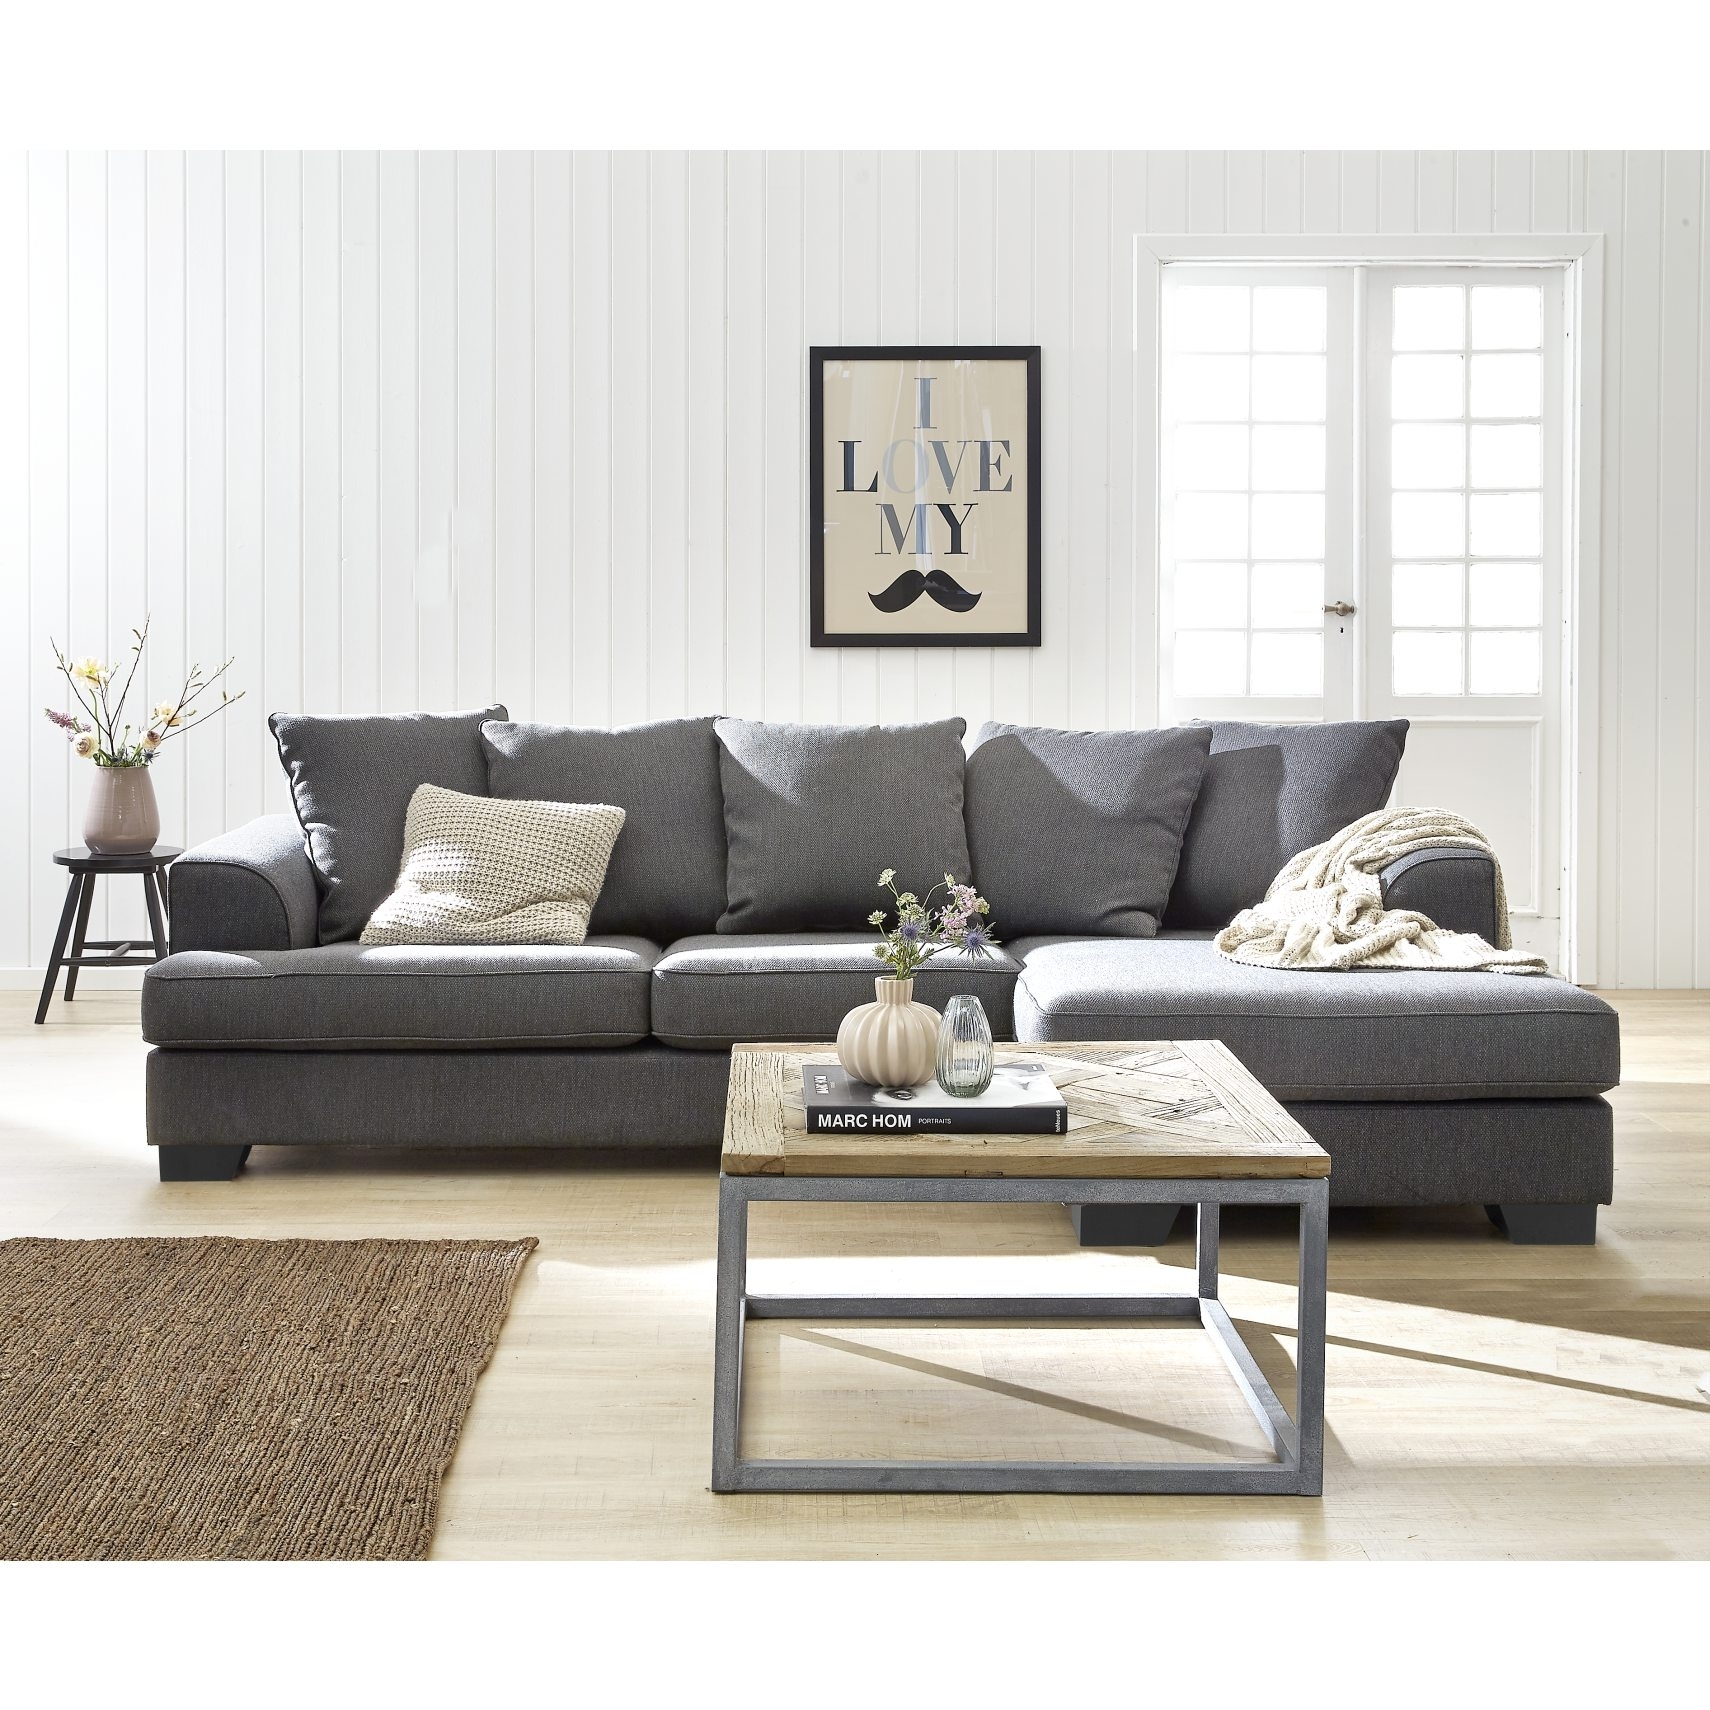 Sofa Kingston Ontario | Thecreativescientist throughout Kingston Ontario Sectional Sofas (Image 10 of 10)